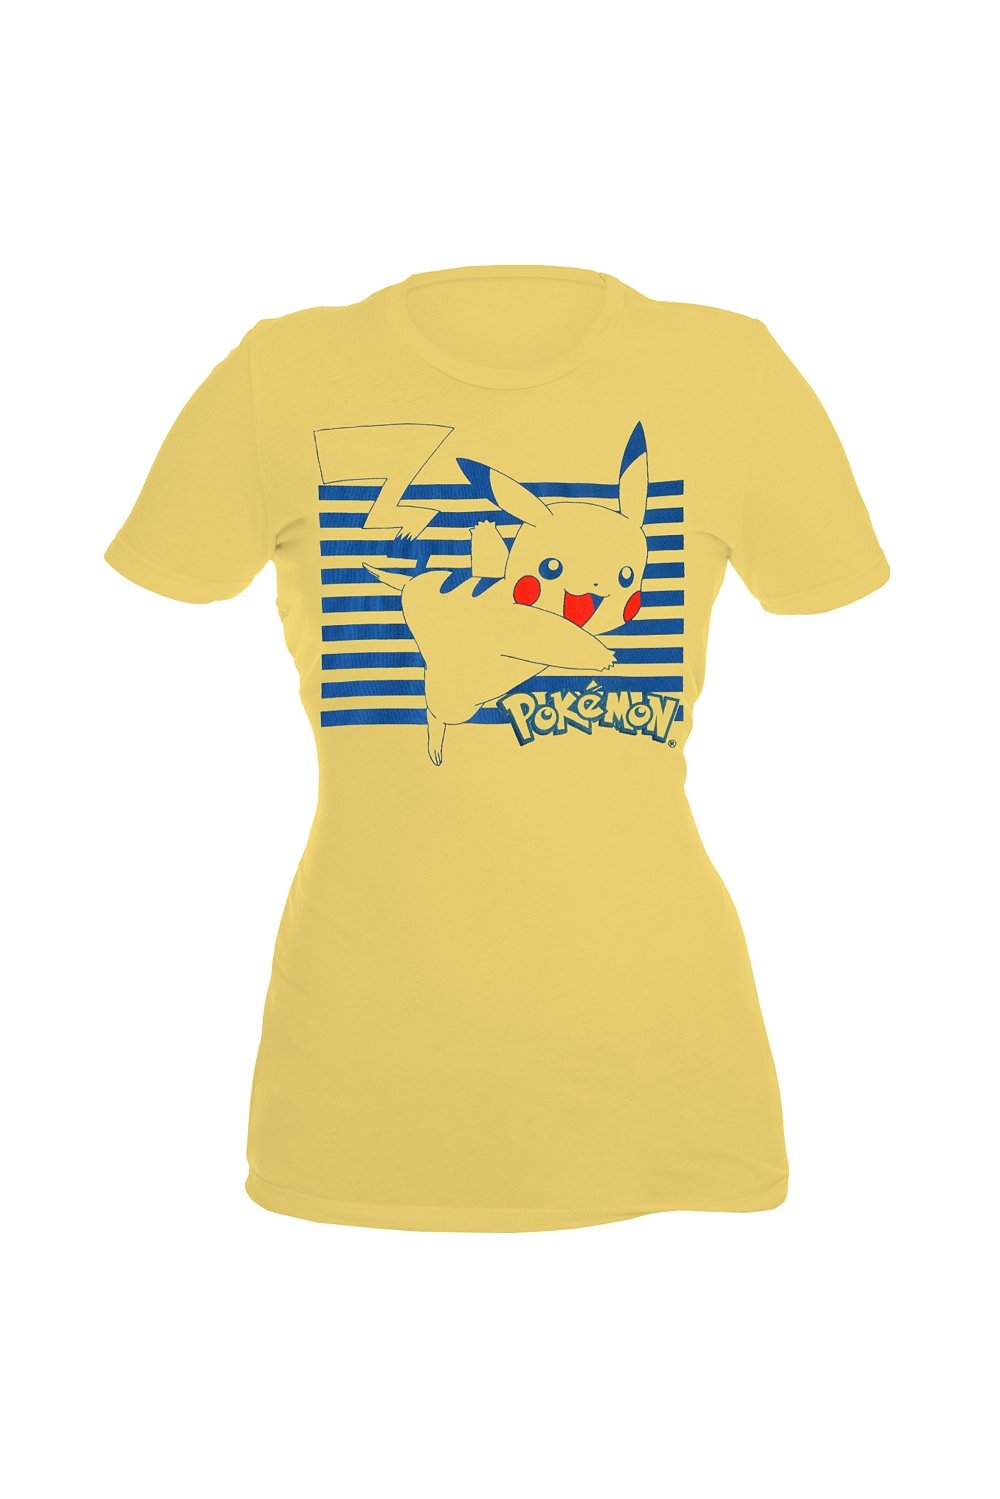 Pokémon Pikachu Striped Yellow Girls T-Shirt